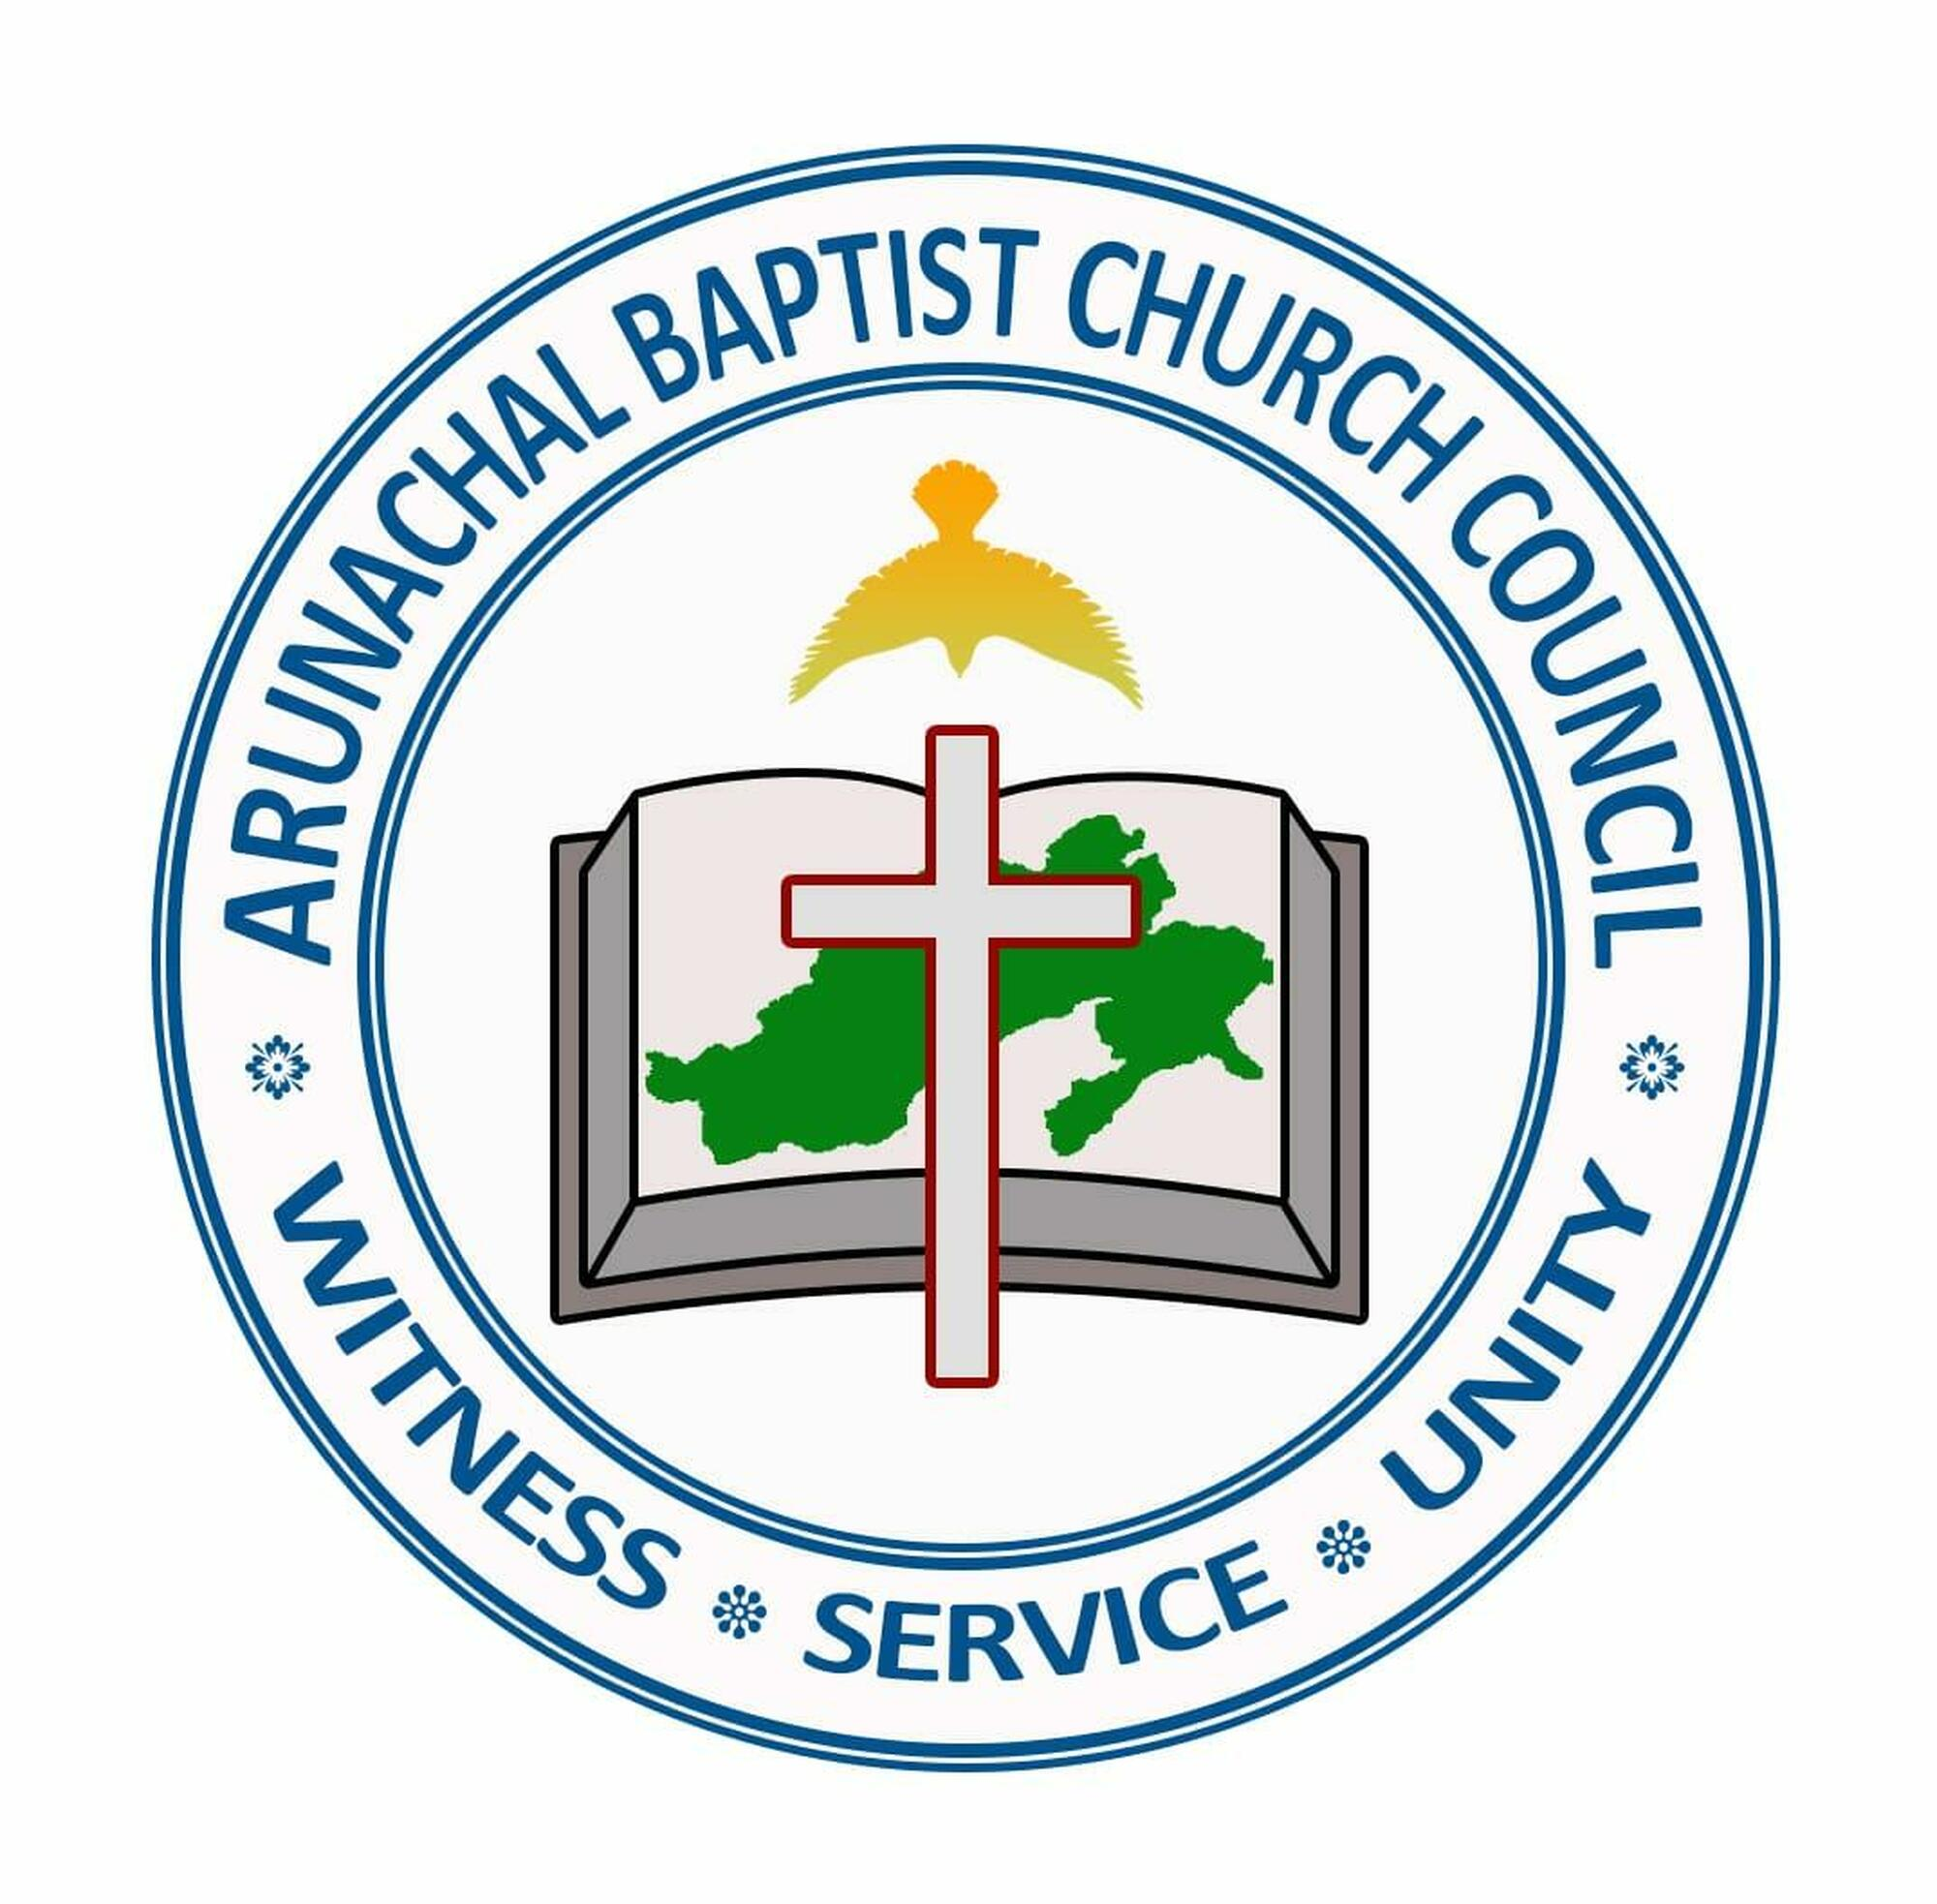 Arunachal Baptist together in Witness Service and Unity